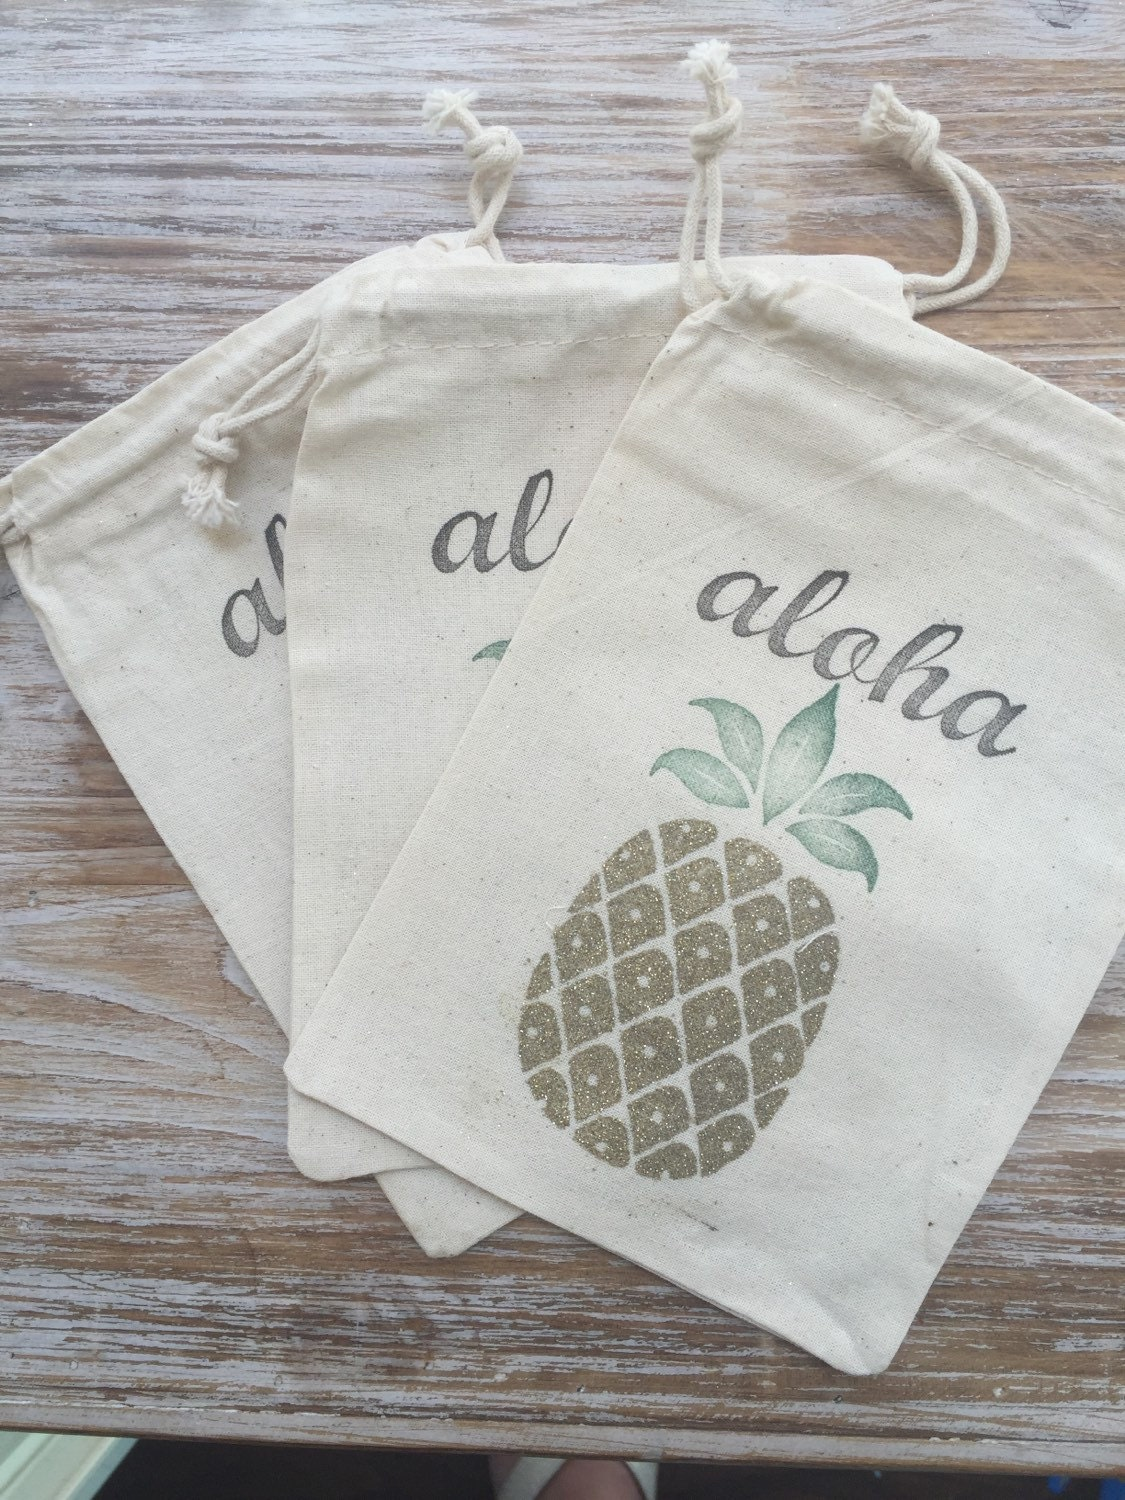 10 Pineapple Favor Bags Aloha Favor Bags Hawaii Favor Bags